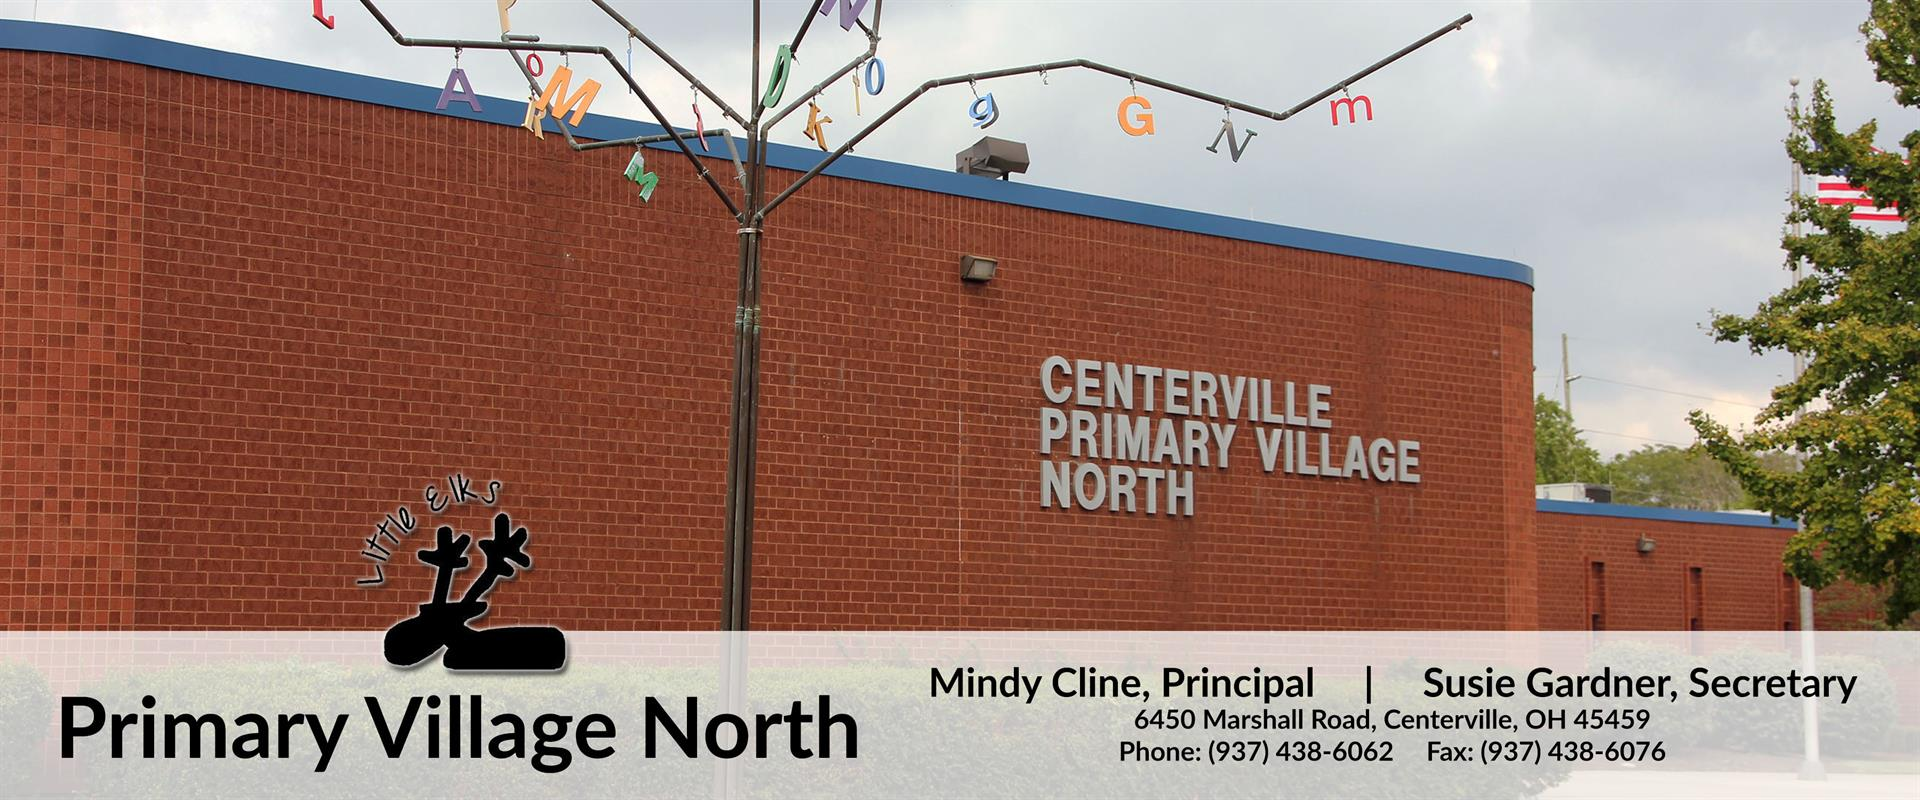 Image of Primary Village North logo and address